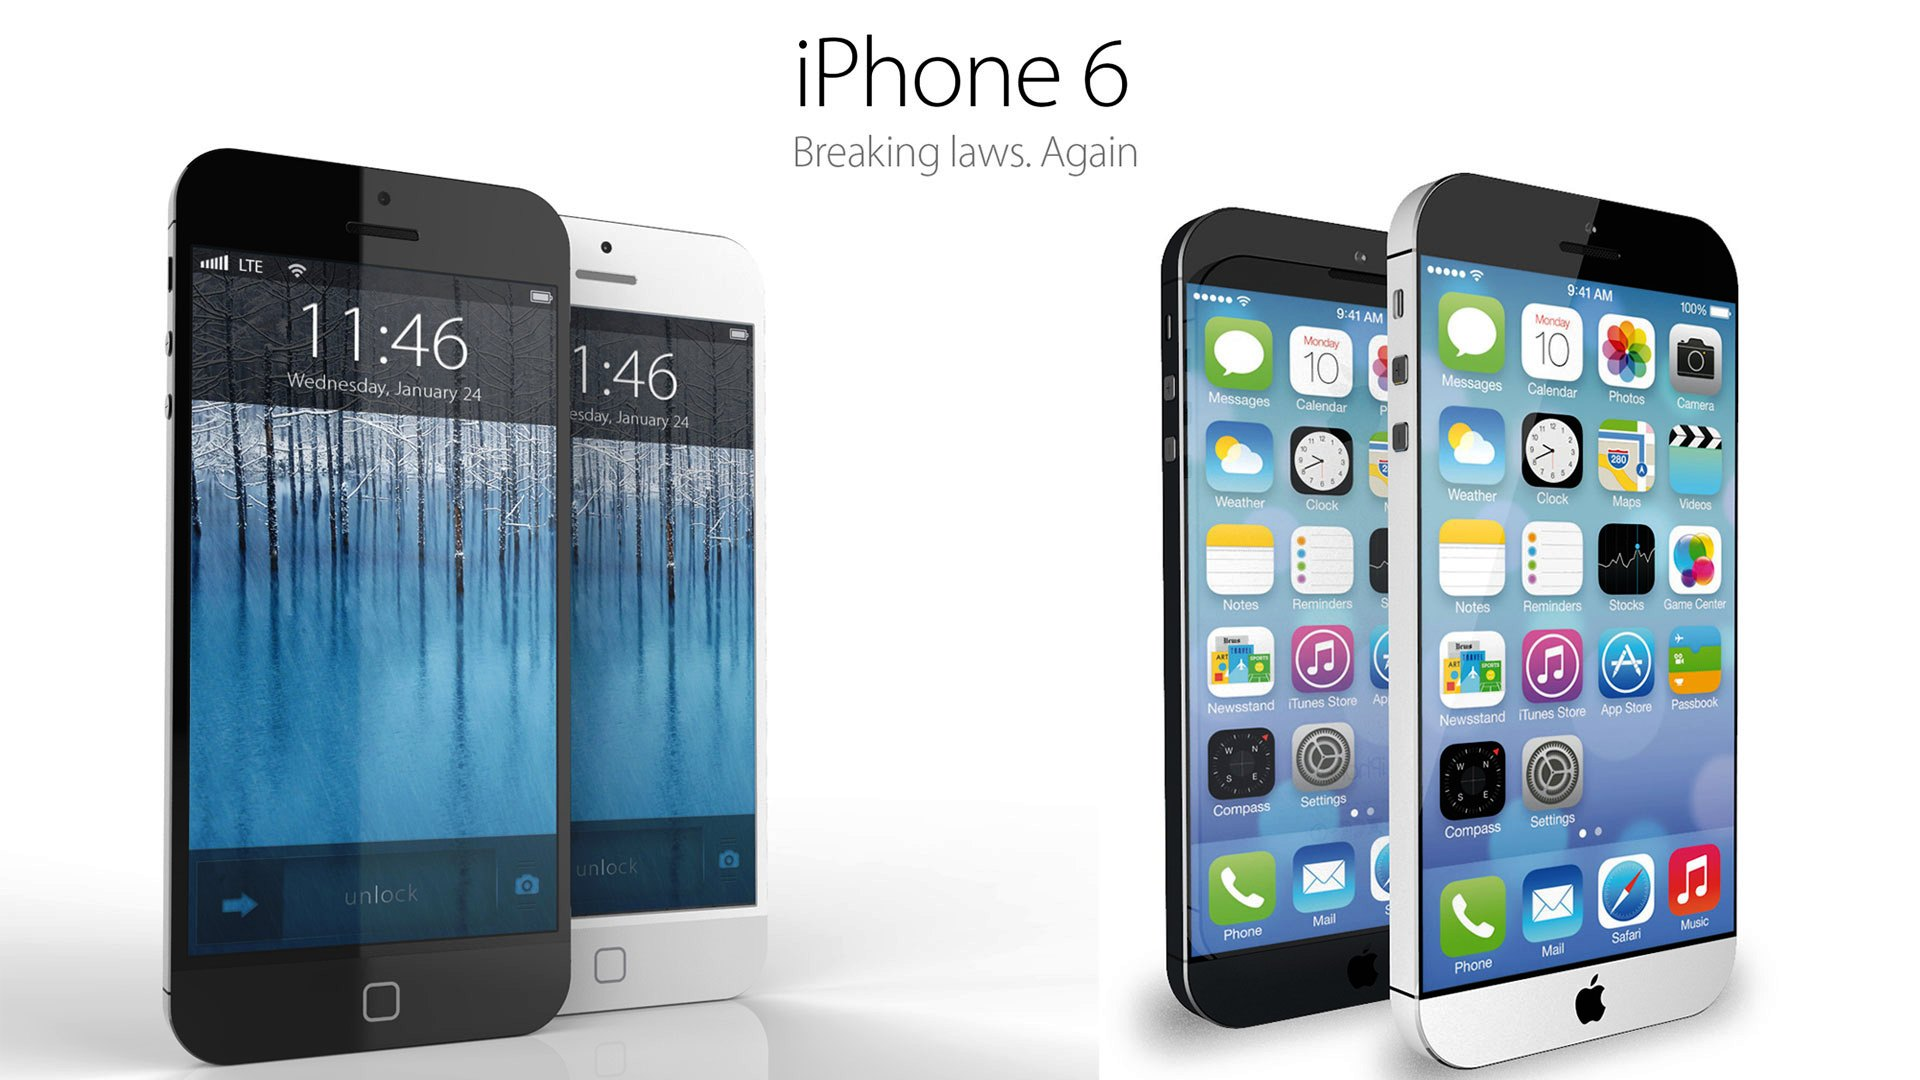 An artist's impression of iPhone 6